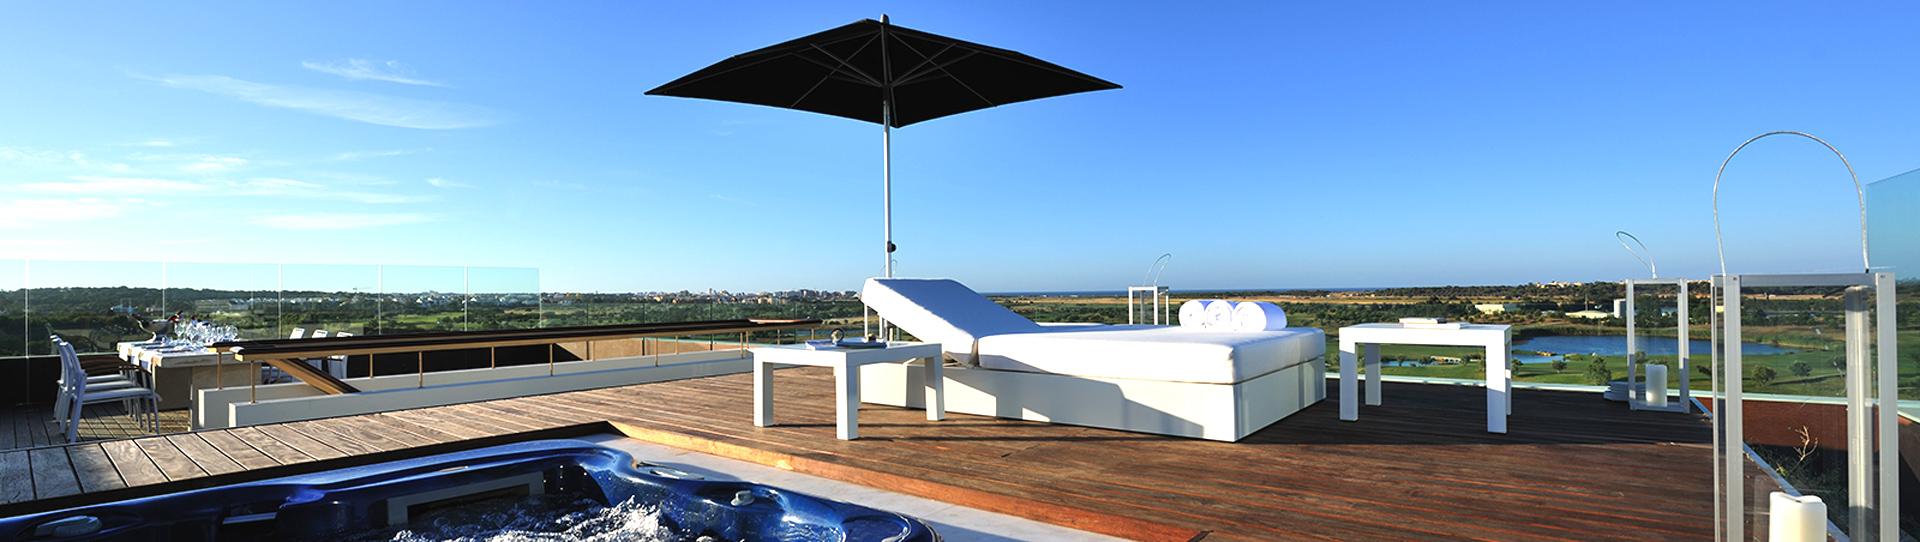 Anantara Vilamoura Algarve Resort - Photo 1